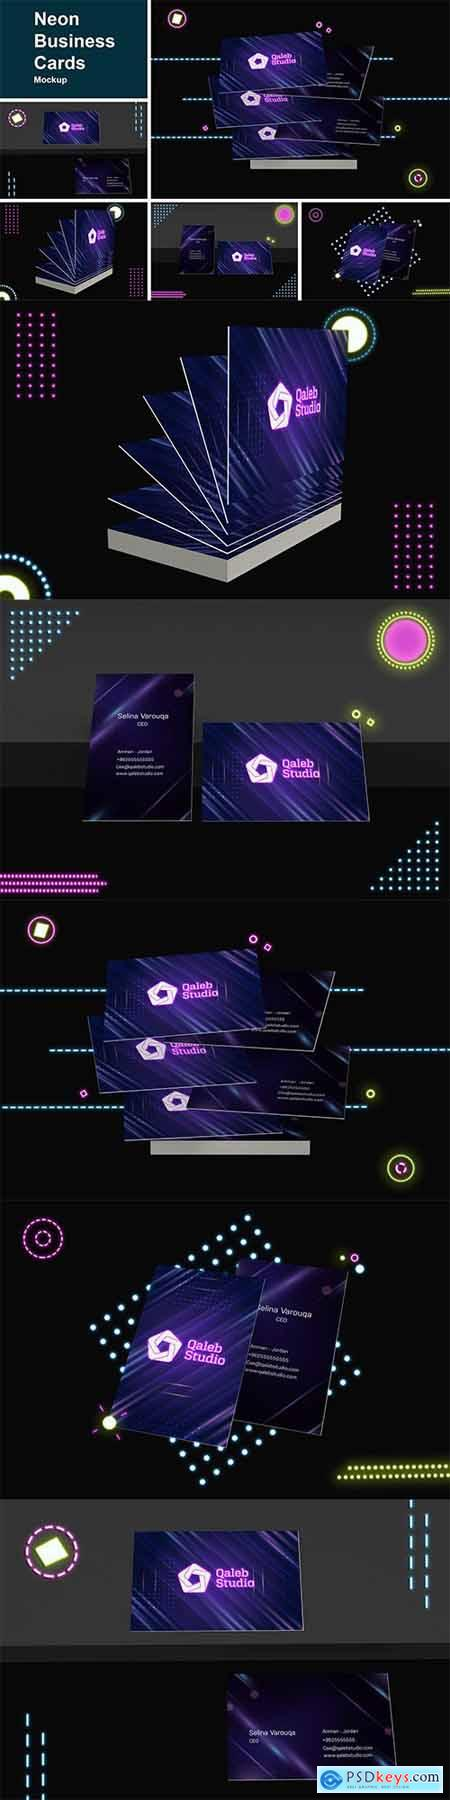 Neon Business Cards Mockup